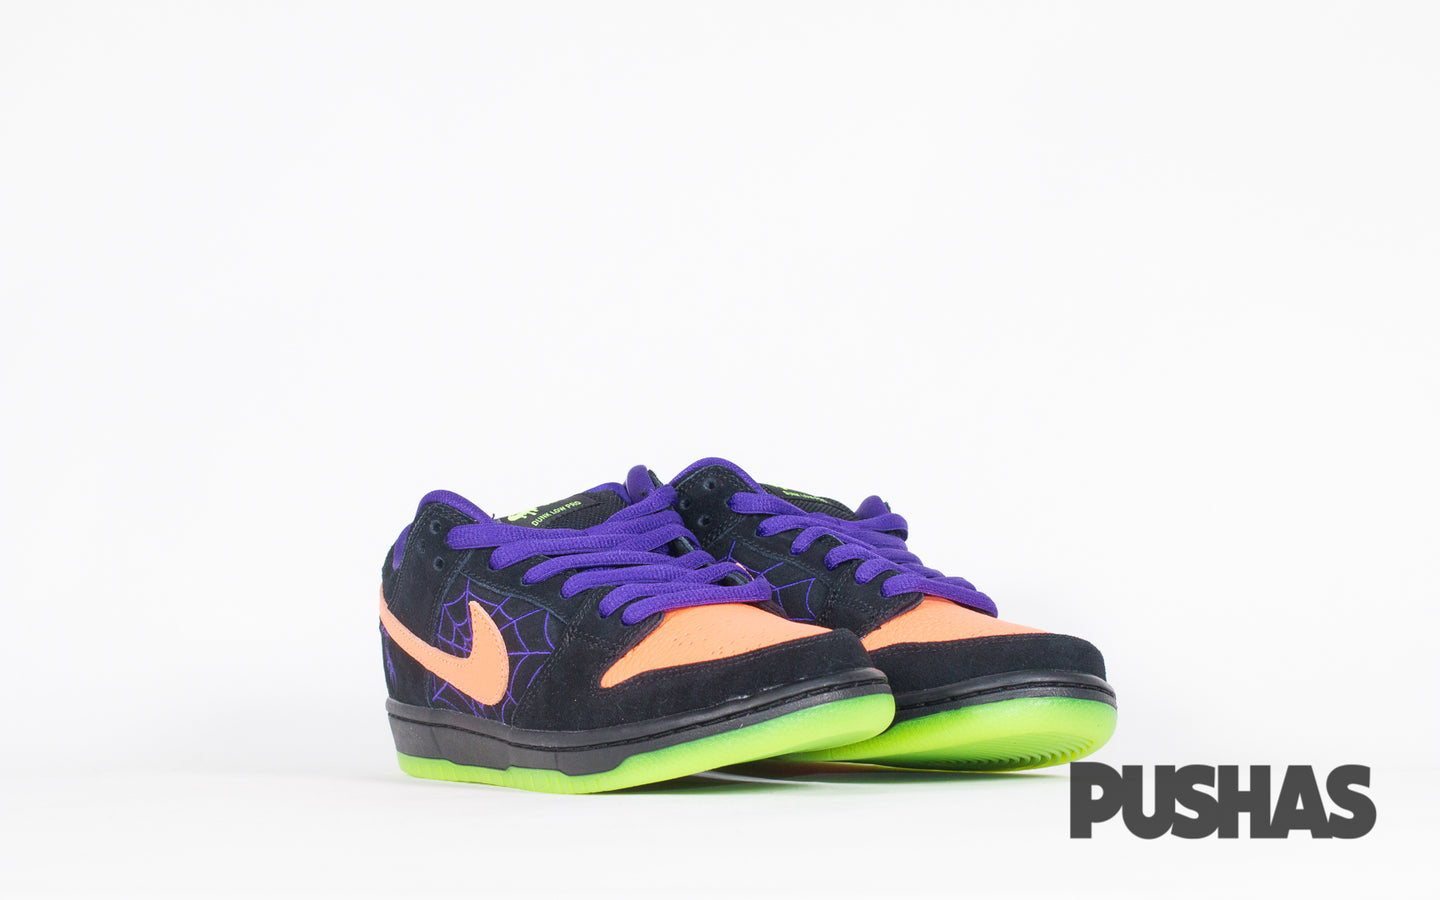 pushas-Nike-SB-Dunk-Low-Night-of-Mischief